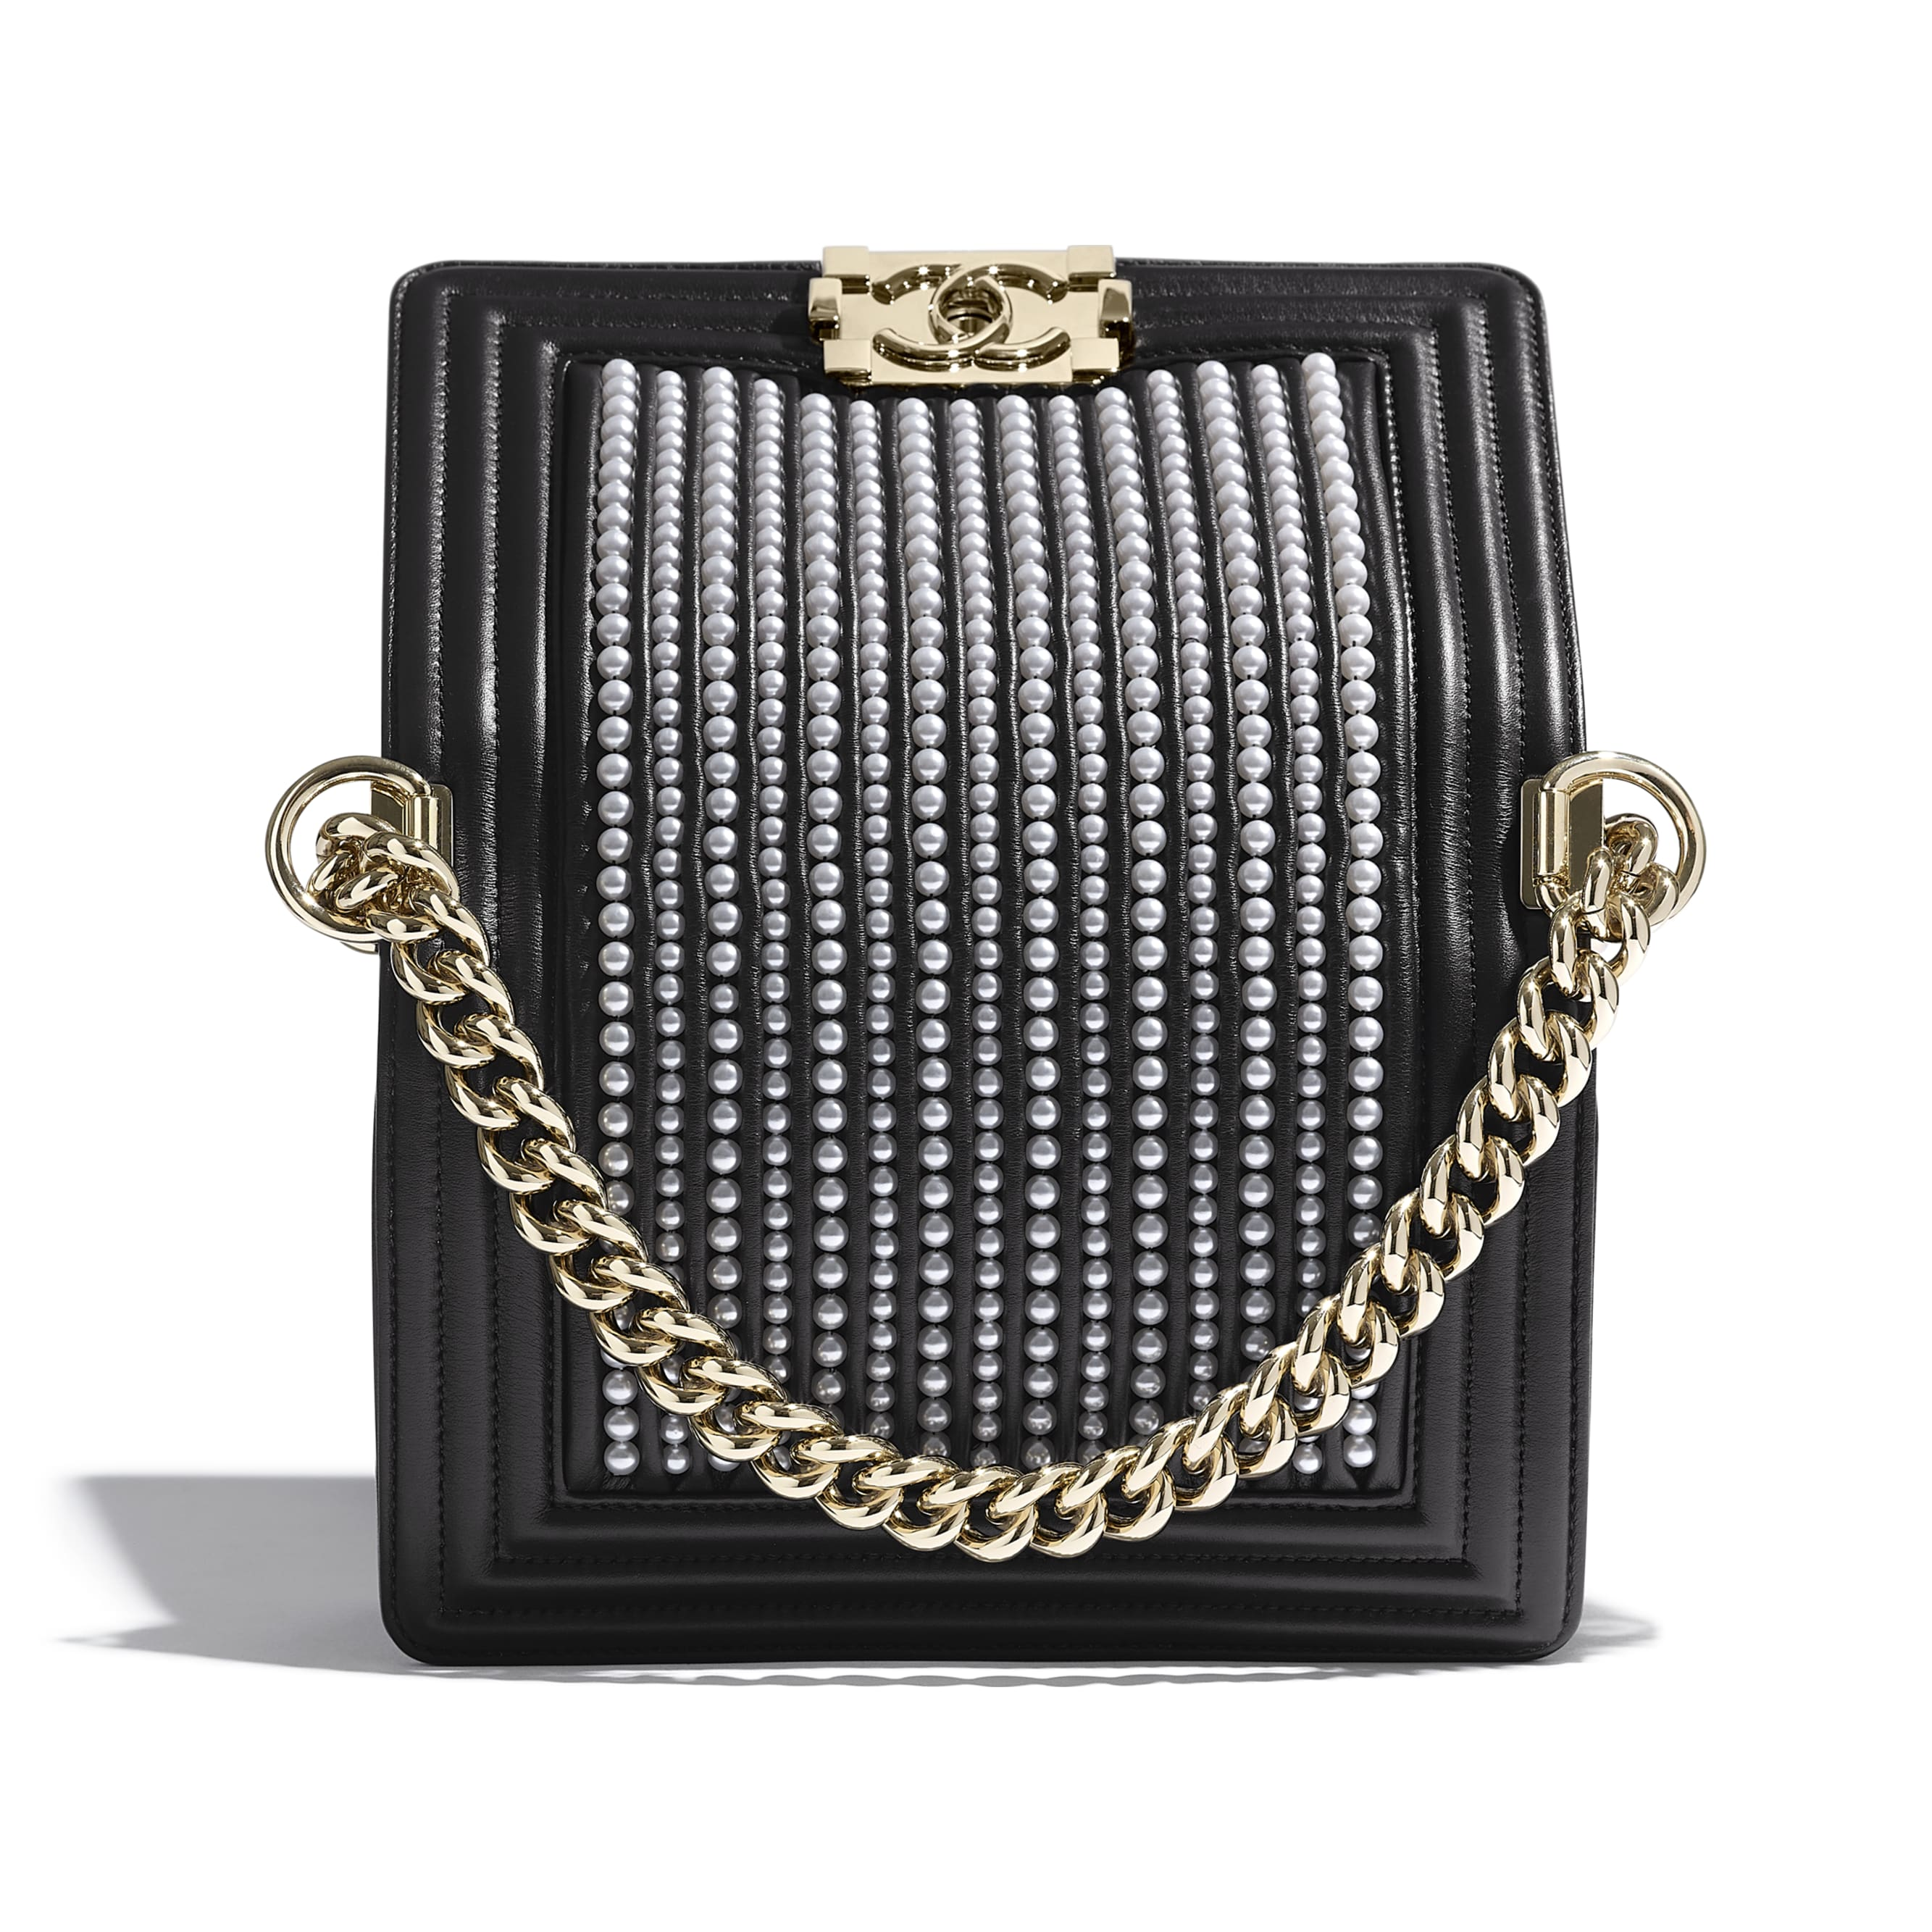 Small BOY CHANEL Handbag - Black - Calfskin, Imitation Pearls & Gold-Tone Metal - Extra view - see standard sized version